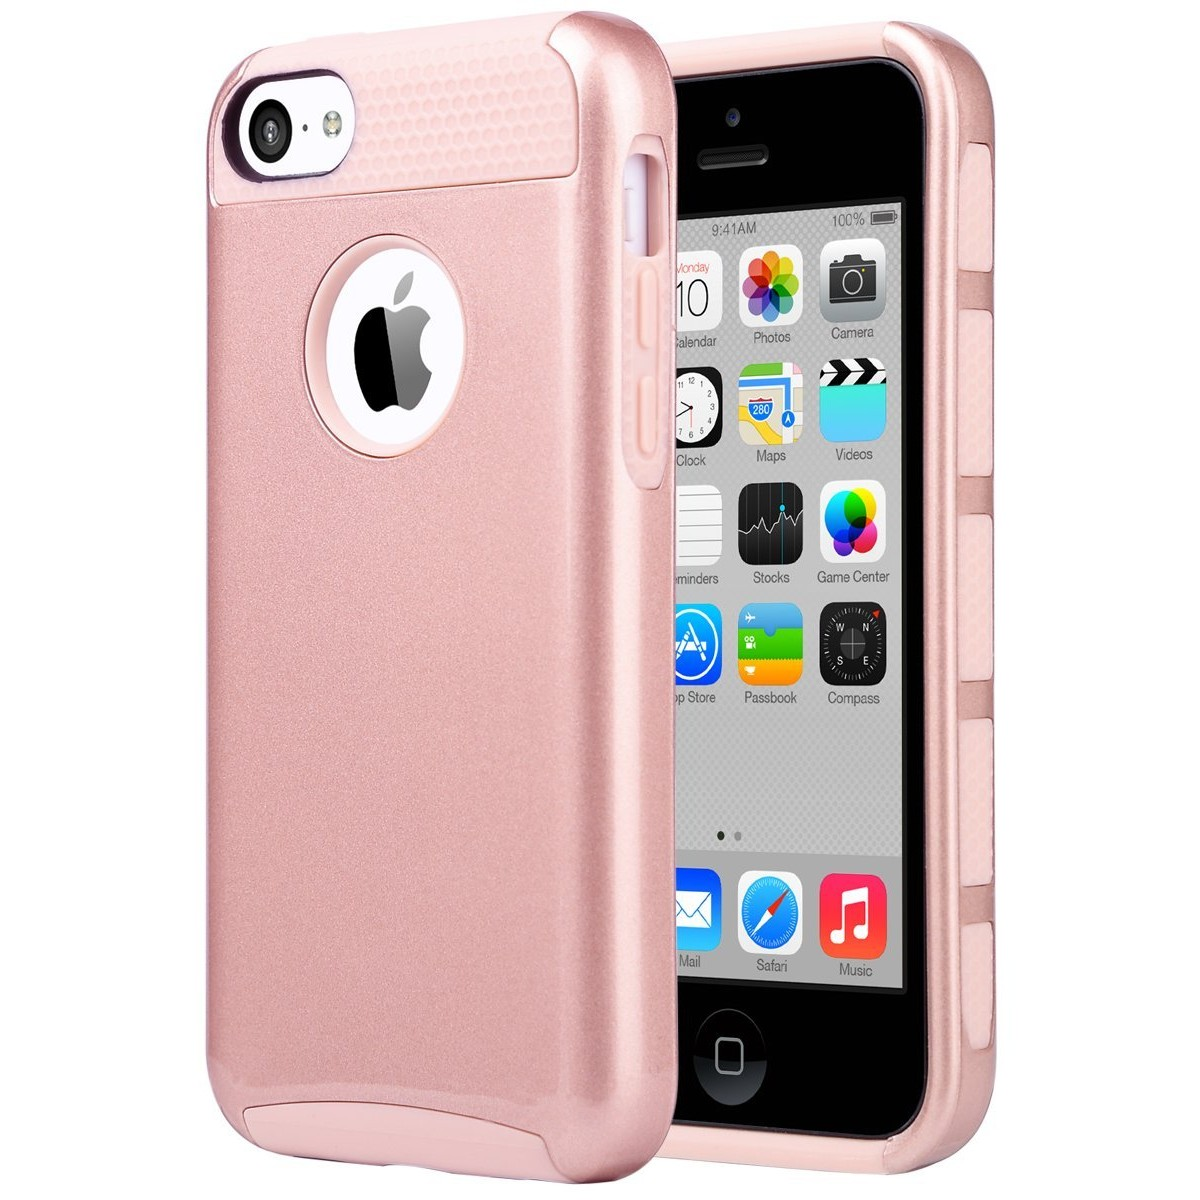 Iphone 5c Case Ulak Slim Lightweight